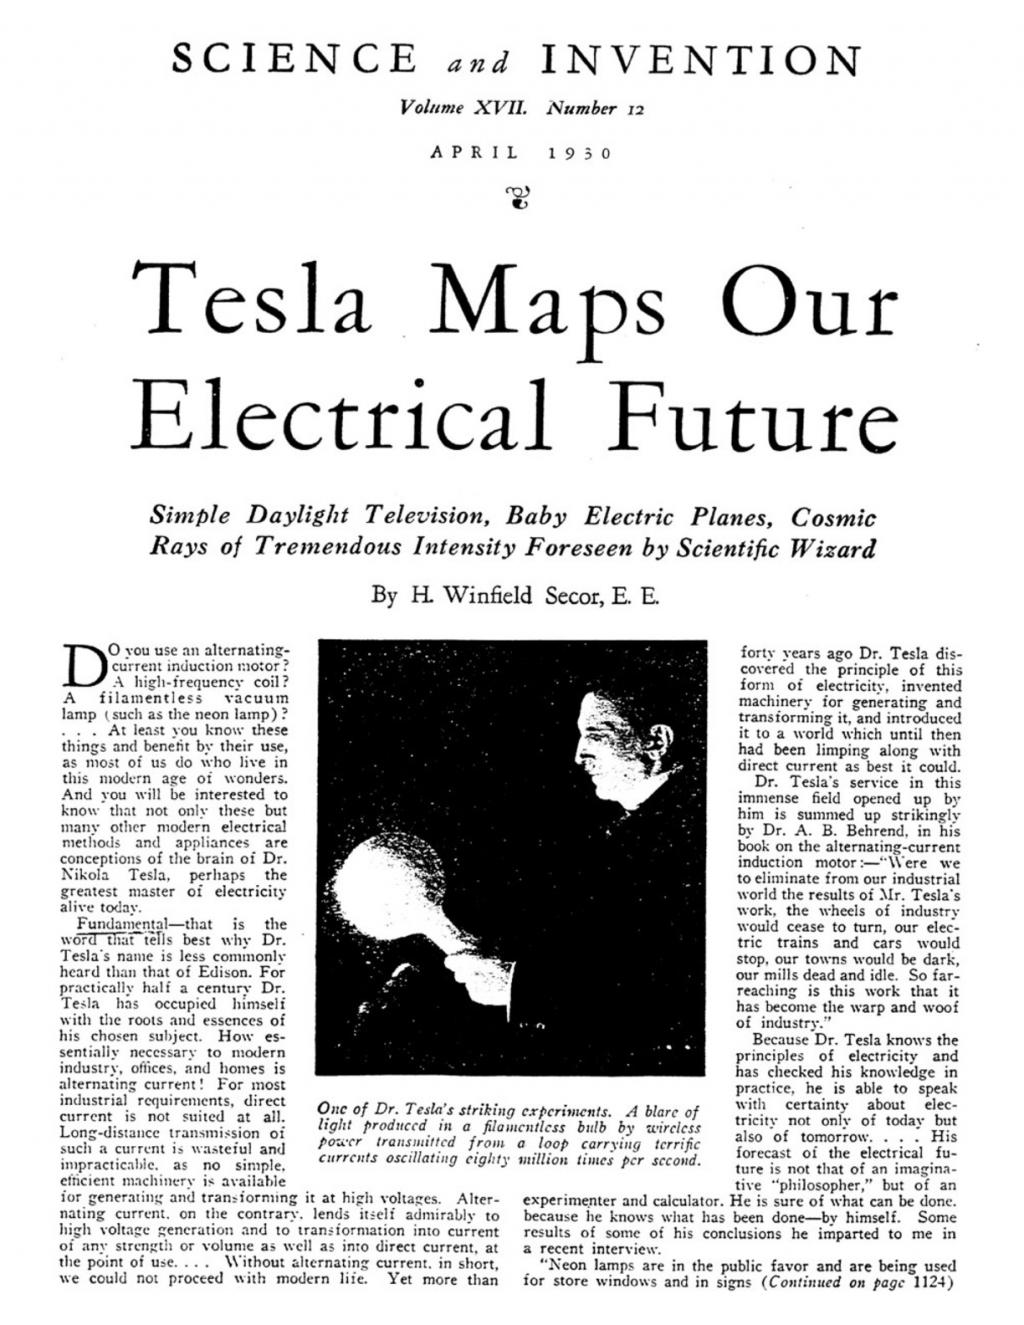 Preview of Tesla Maps Our Electrical Future article